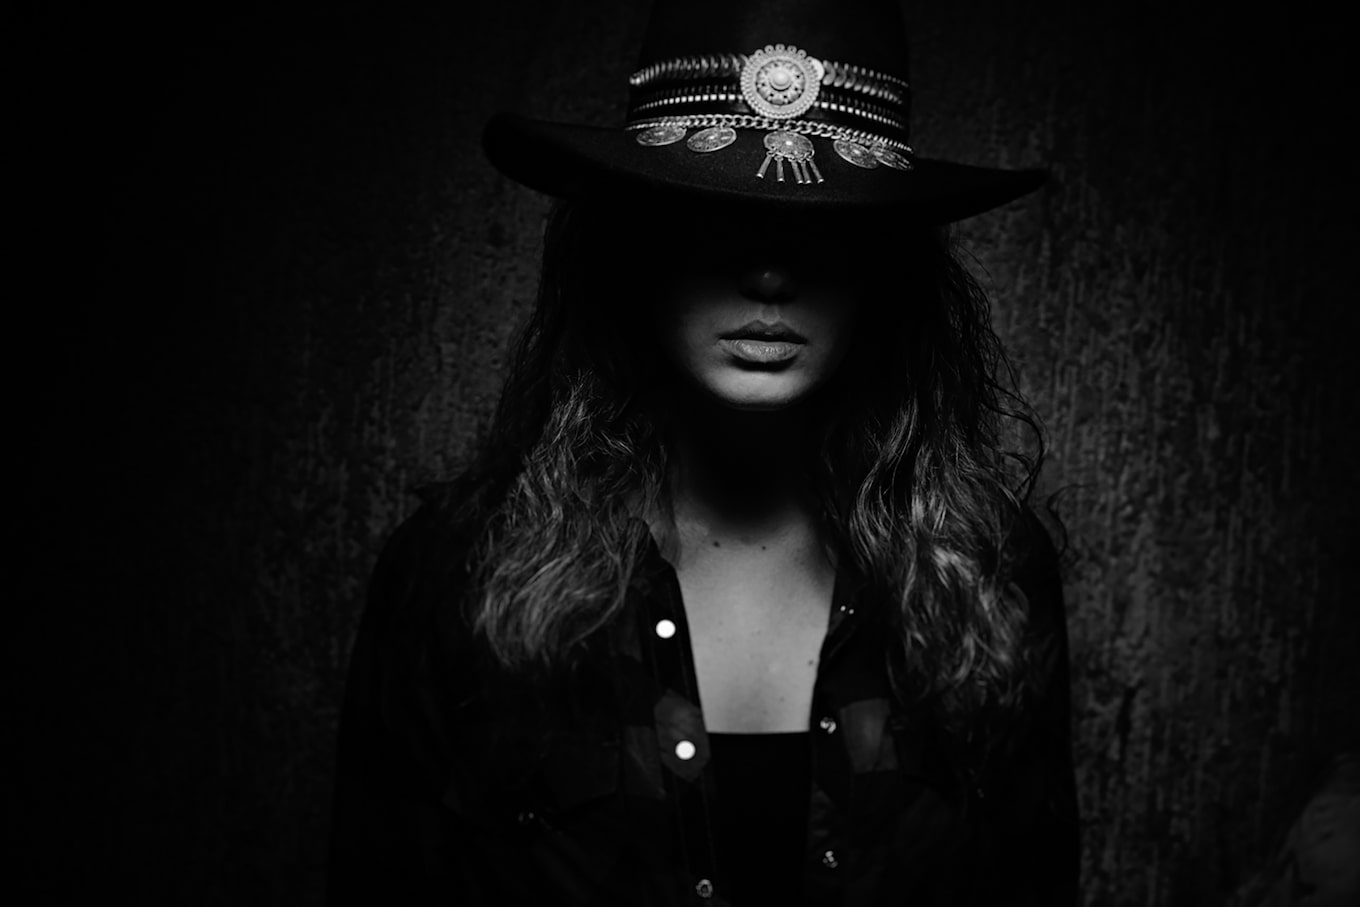 Frank-Doorhof-sony-alpha-7RII-moodily-lit-portrait-of-model-wearing-hat-with-her-face-in-shadow